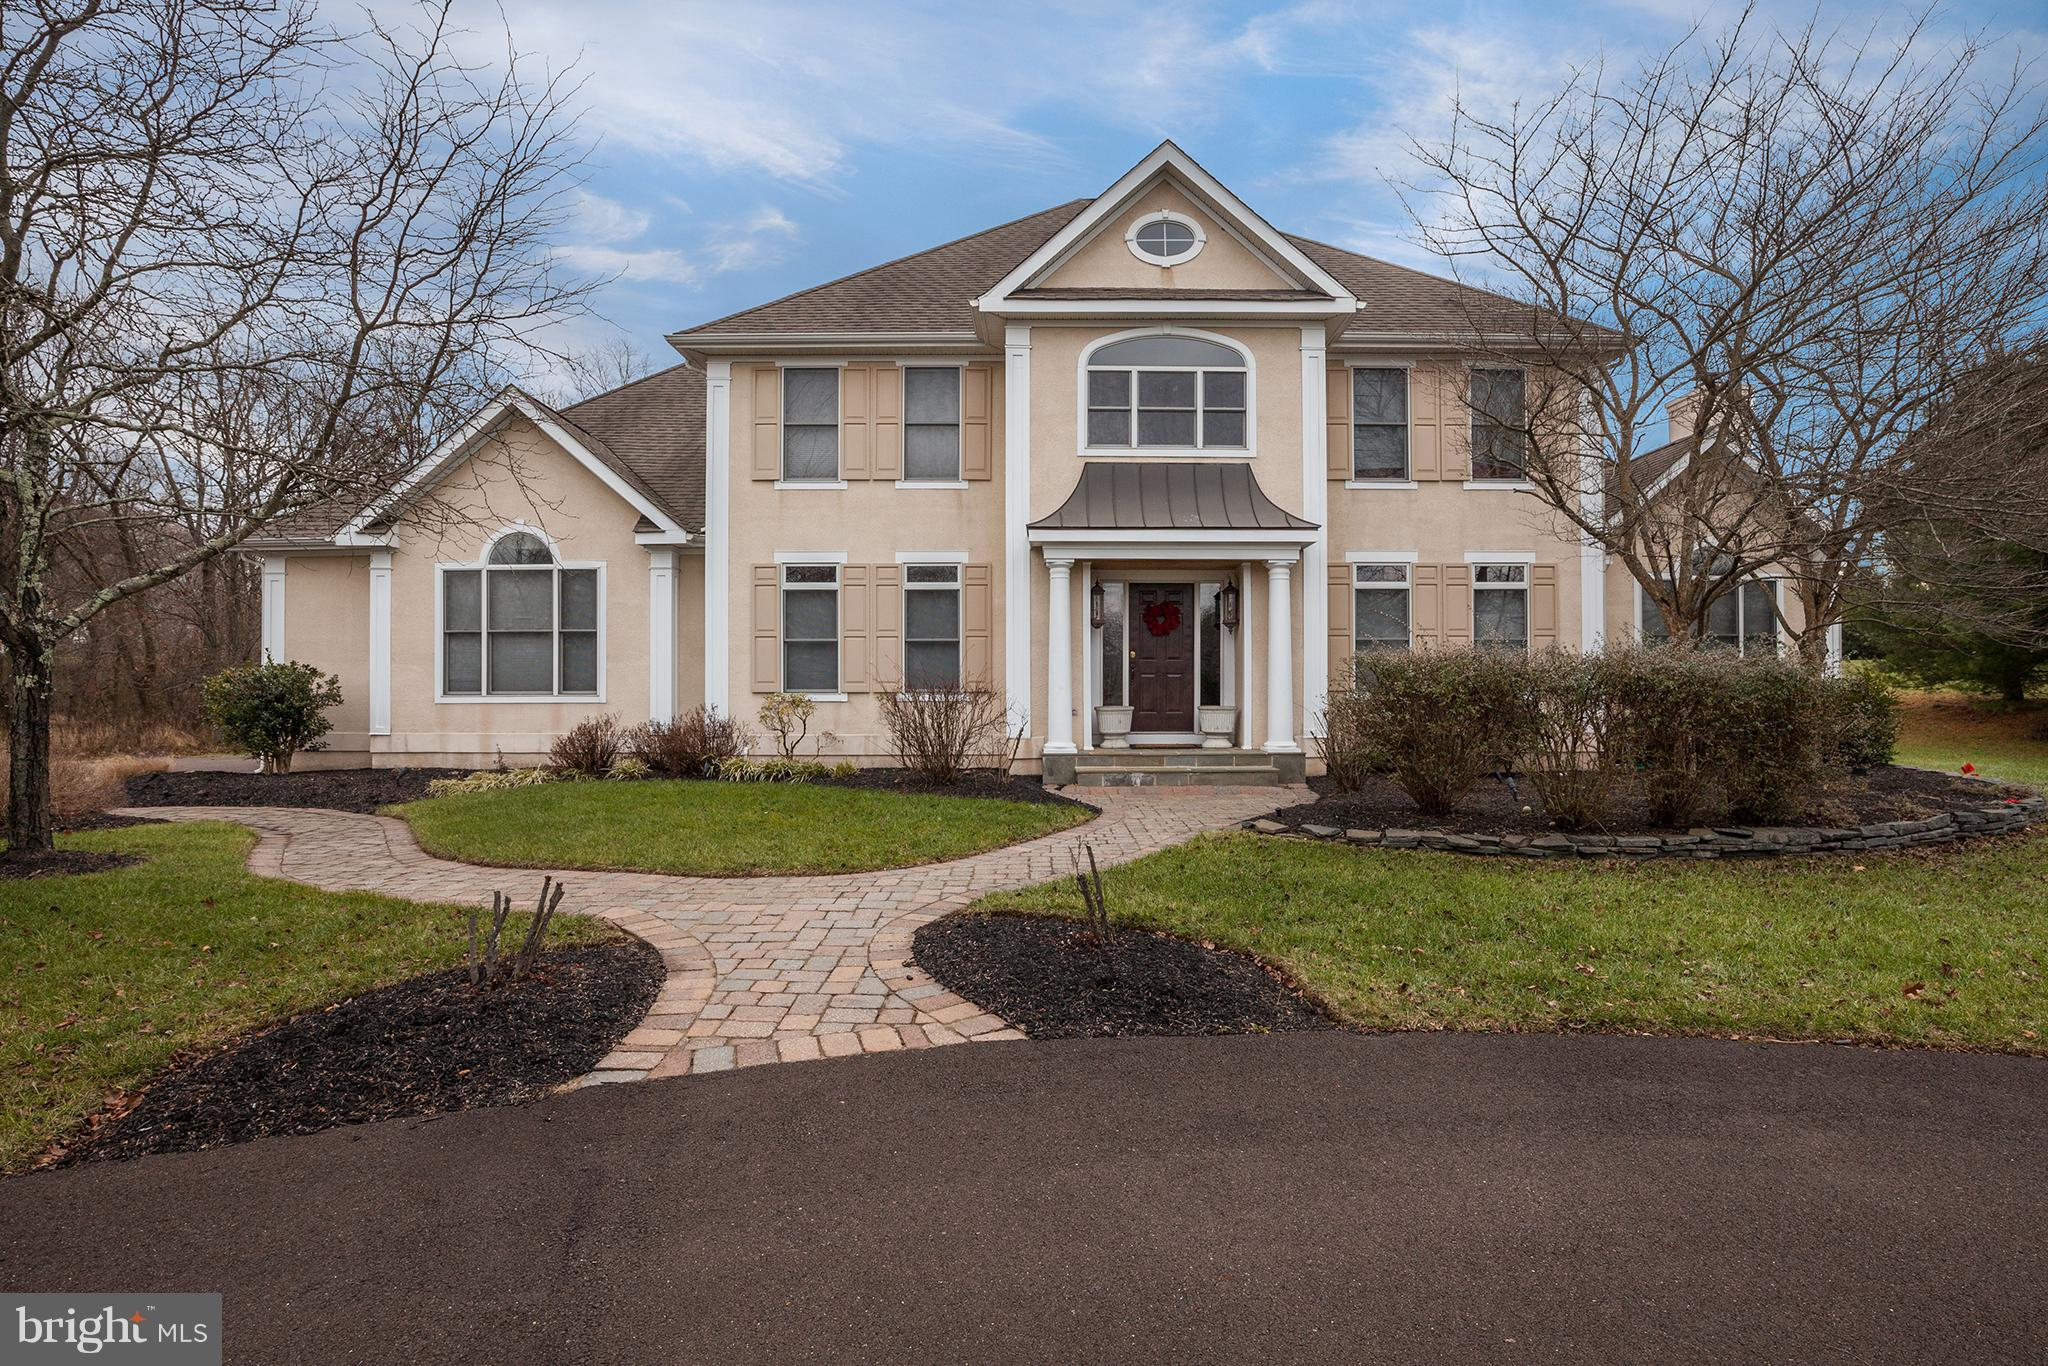 28 TODD RIDGE ROAD, HOPEWELL, NJ 08525